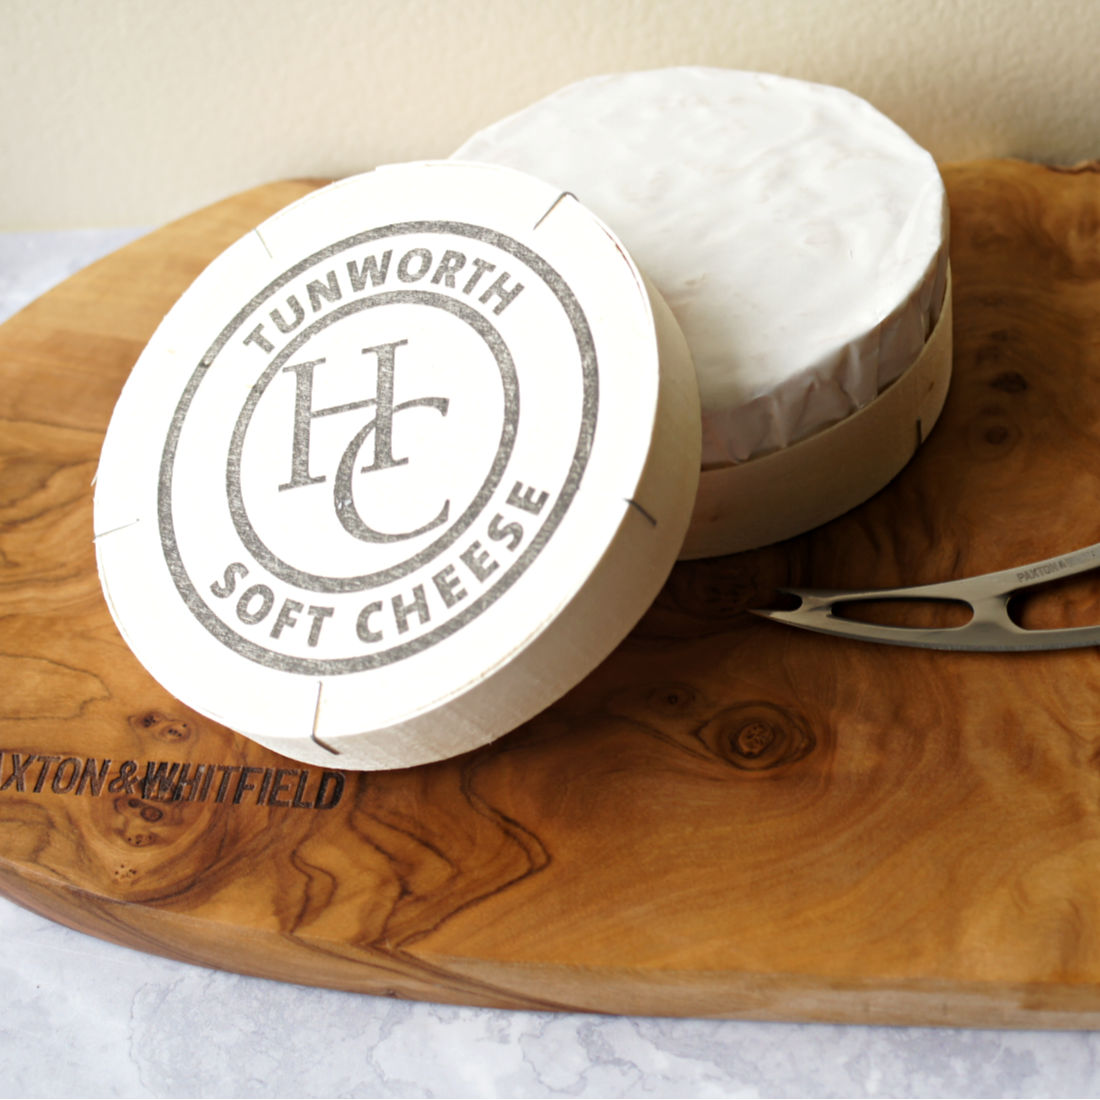 425-Tunworth-Soft-Cheese-in-Box-Low-Res-Square